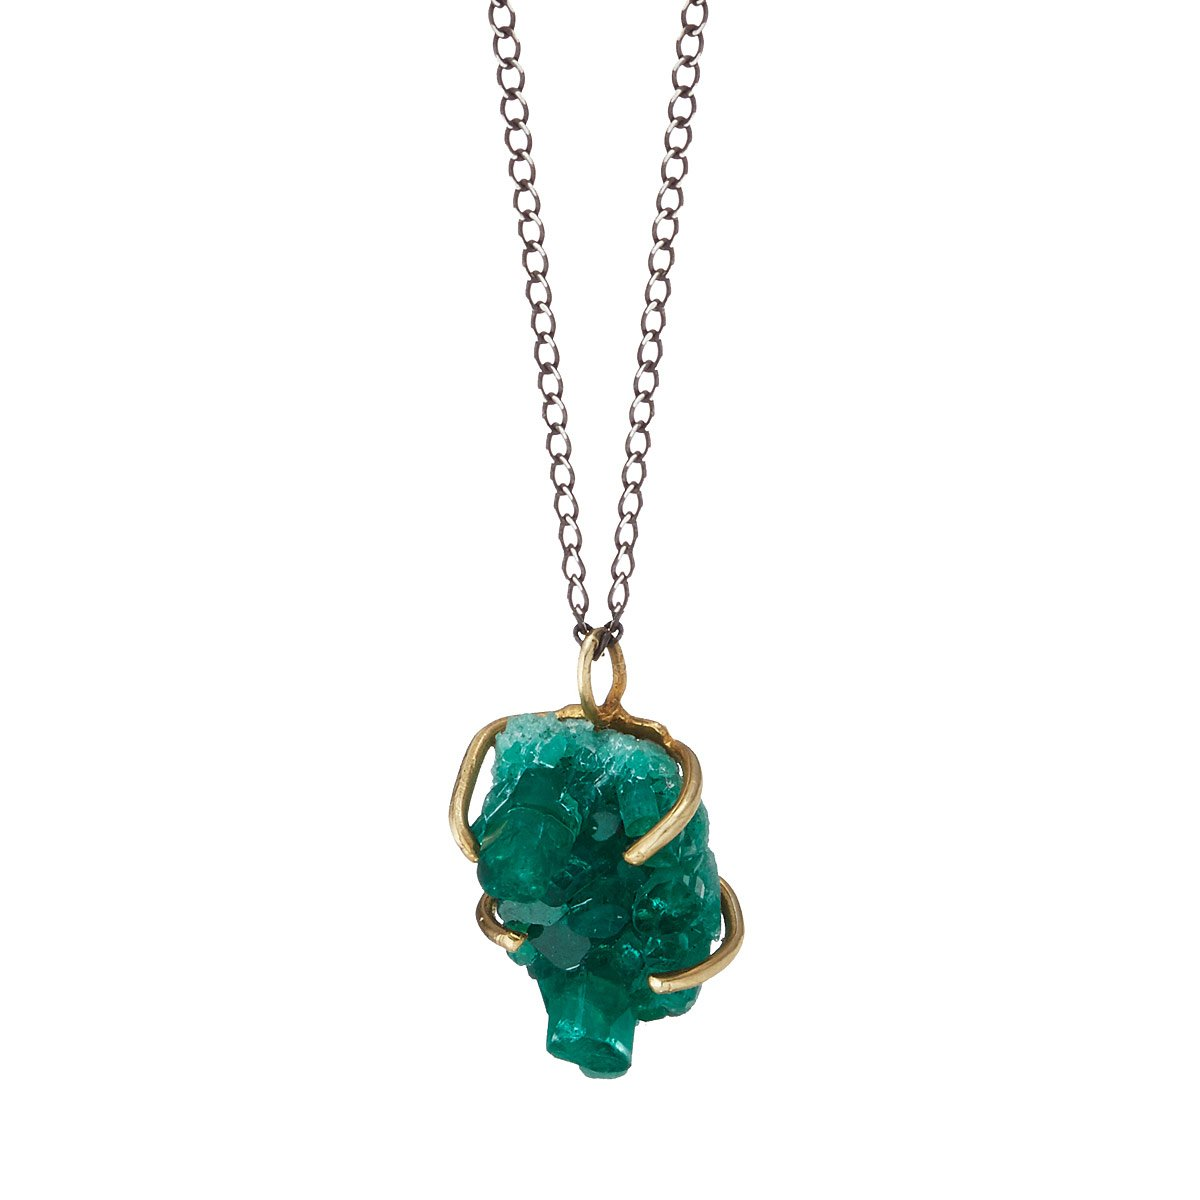 ele necklace keats product emerald divinity